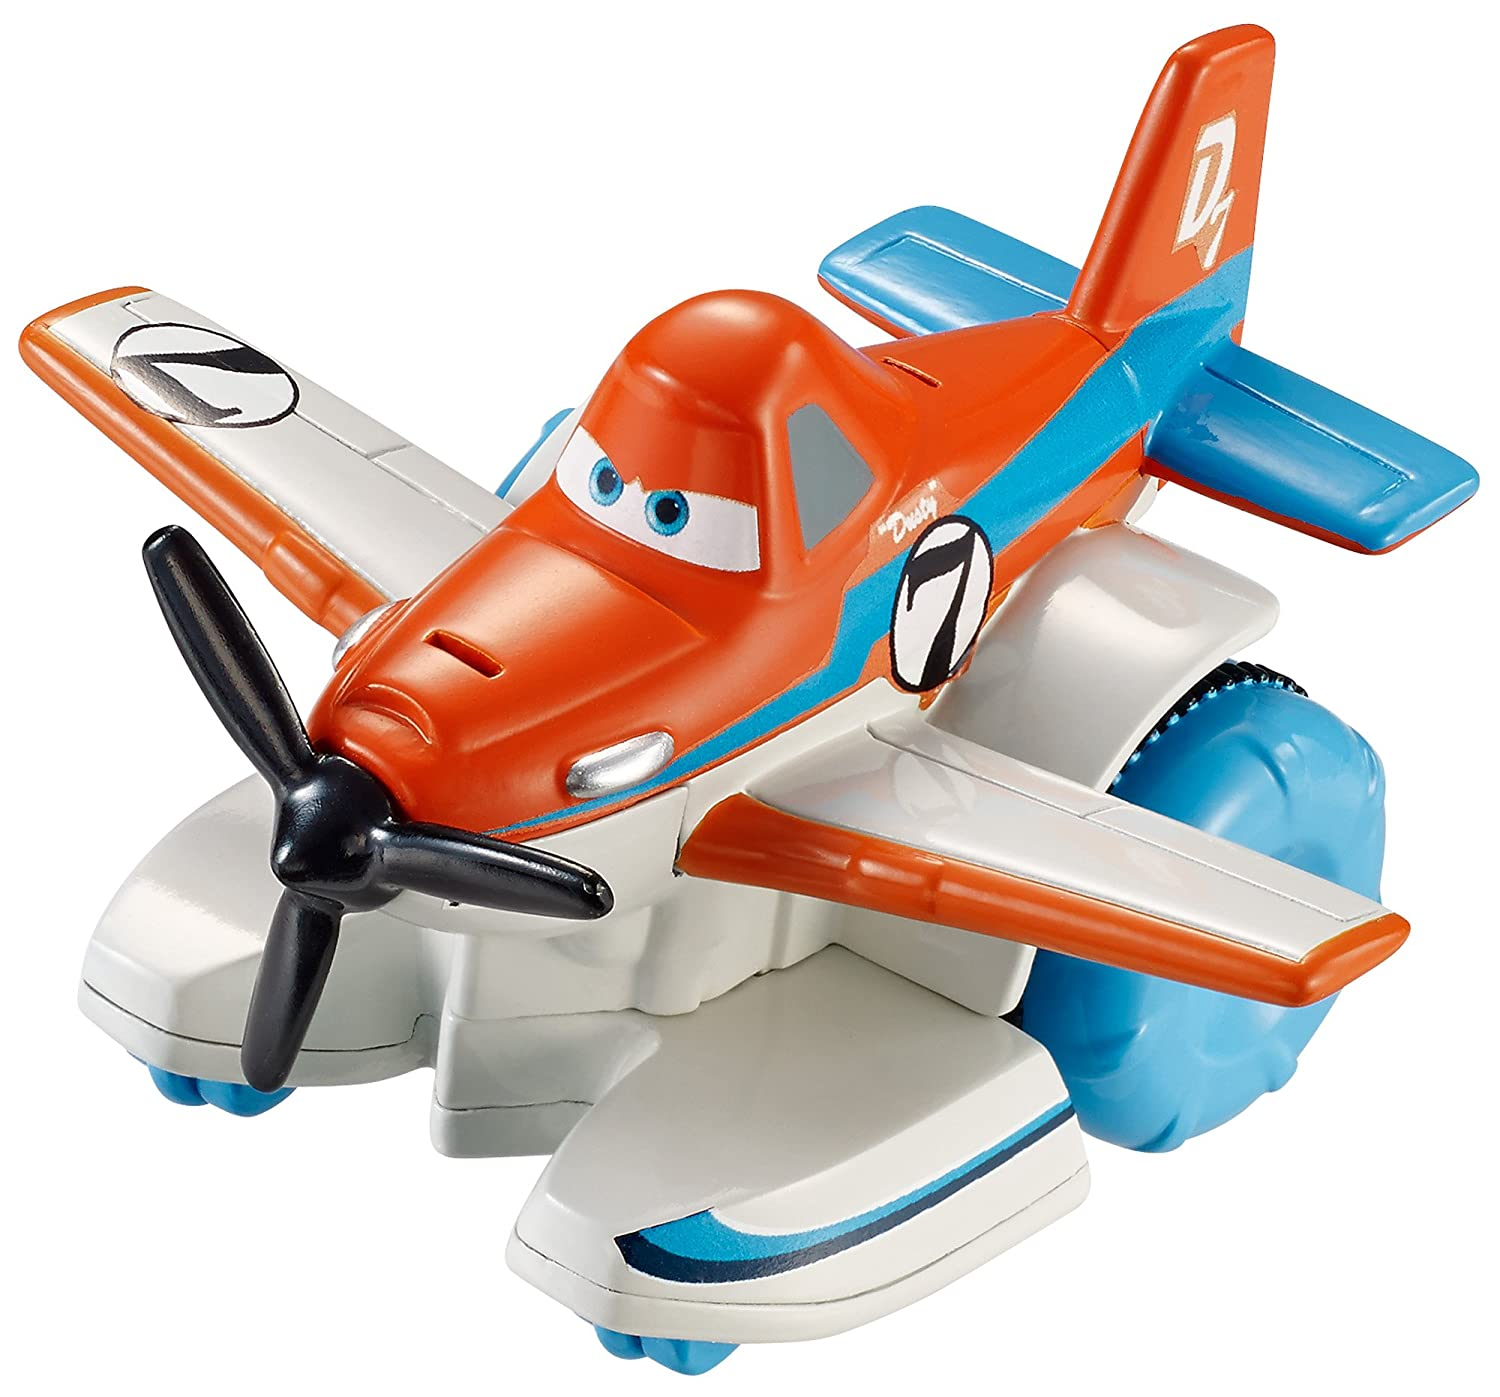 Disney Planes: Fire & Rescue, Hydro Wheels, Dusty Bath Vehicle